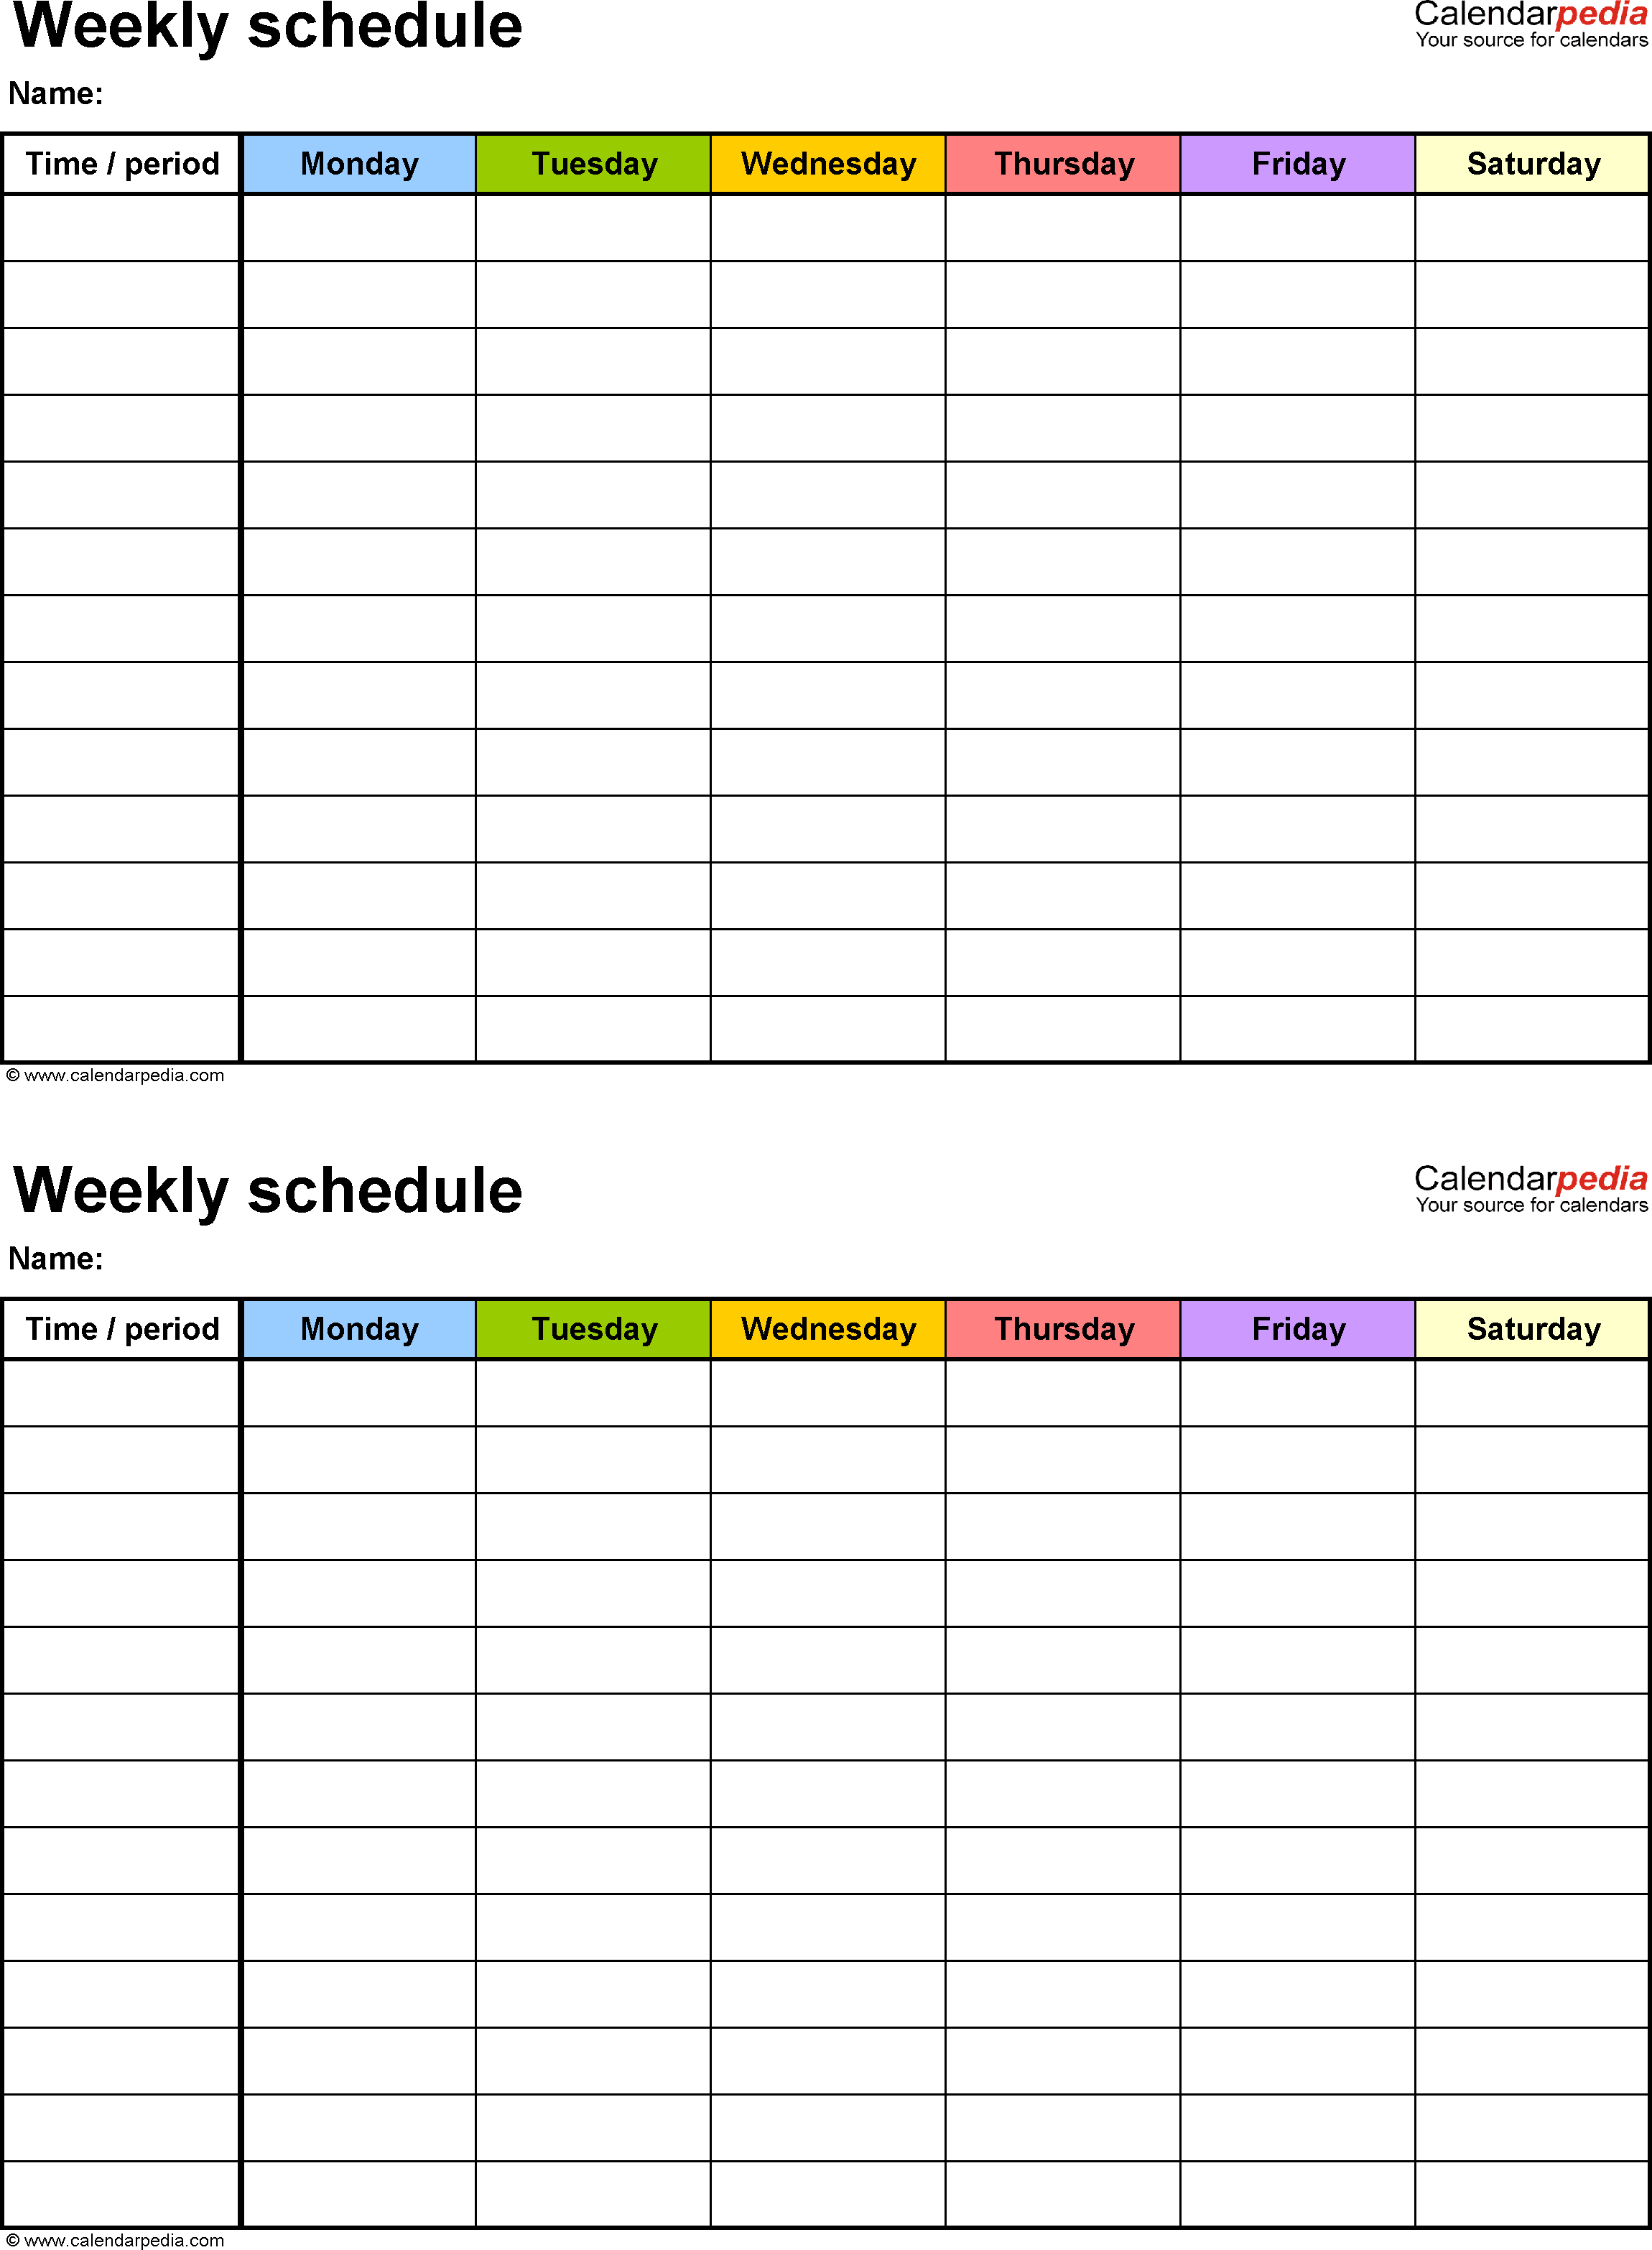 Weekly Schedule Template For Word Version 9: 2 Schedules On 2 Week Schedule Word Template